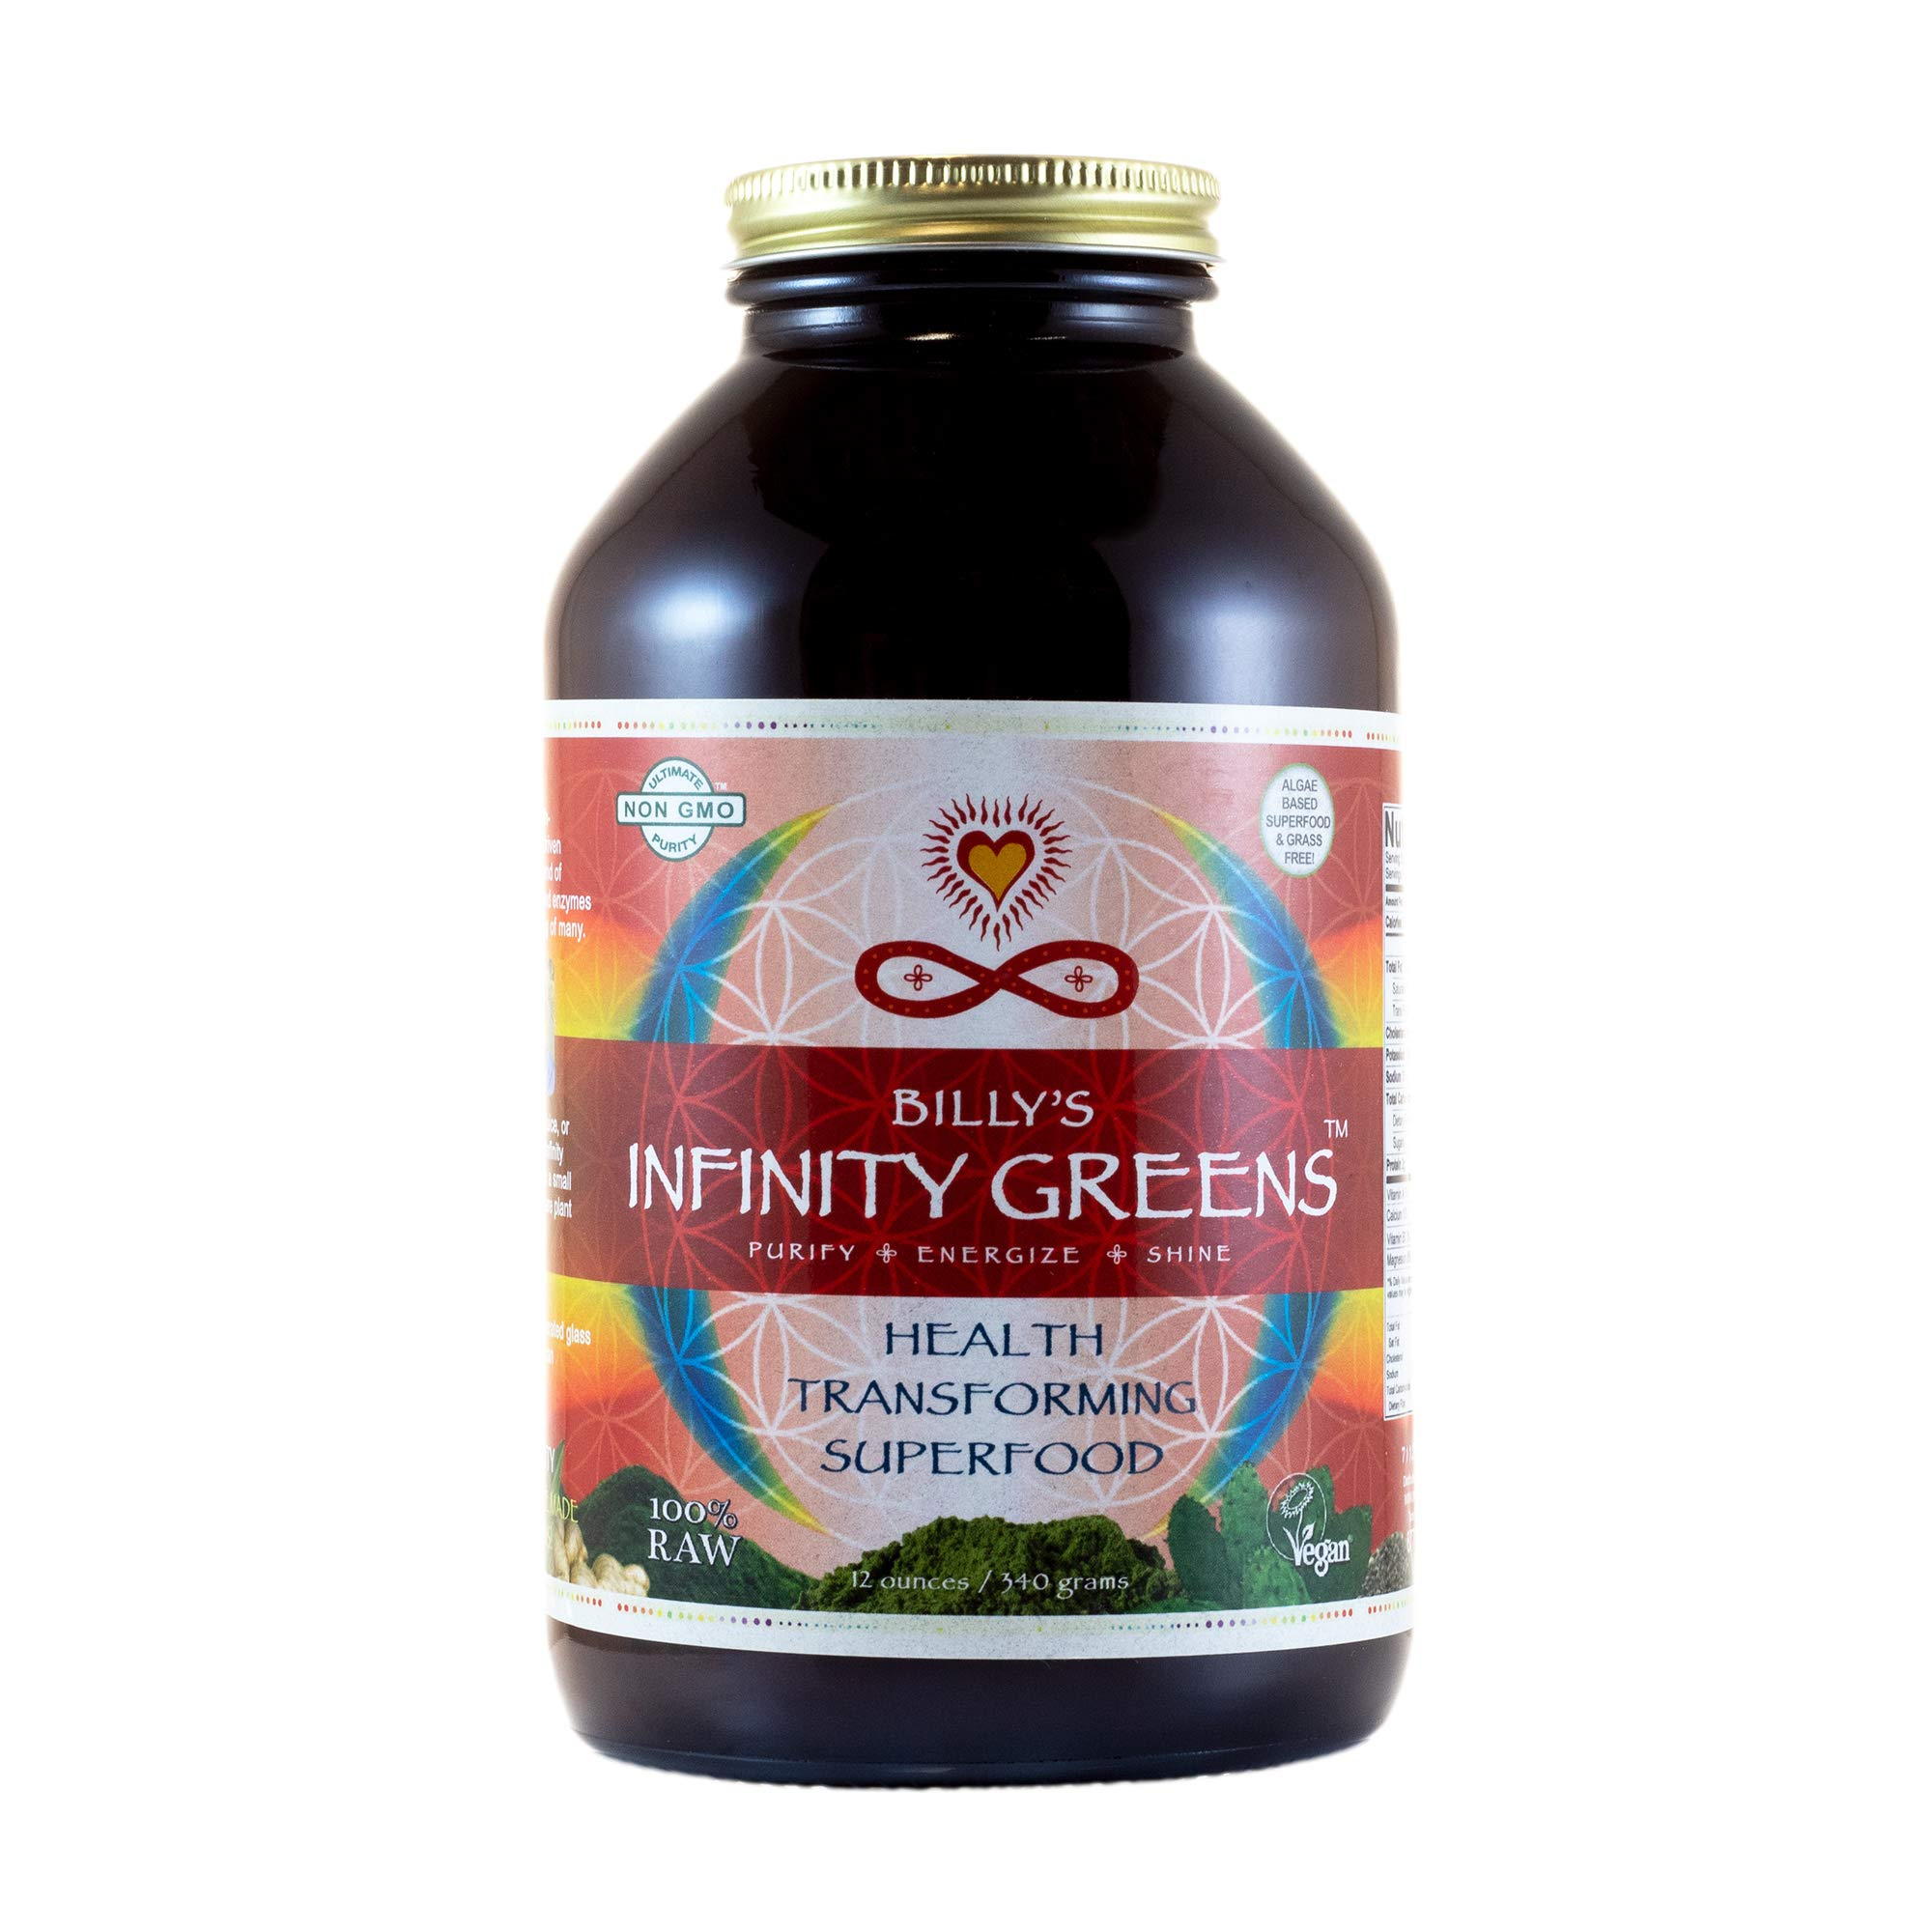 Infinity Greens: Superfood Formula for Weight-loss, Life-force & Longevity. 100% Organic & Wild-Harvested. 34 Servings (12 ounces)